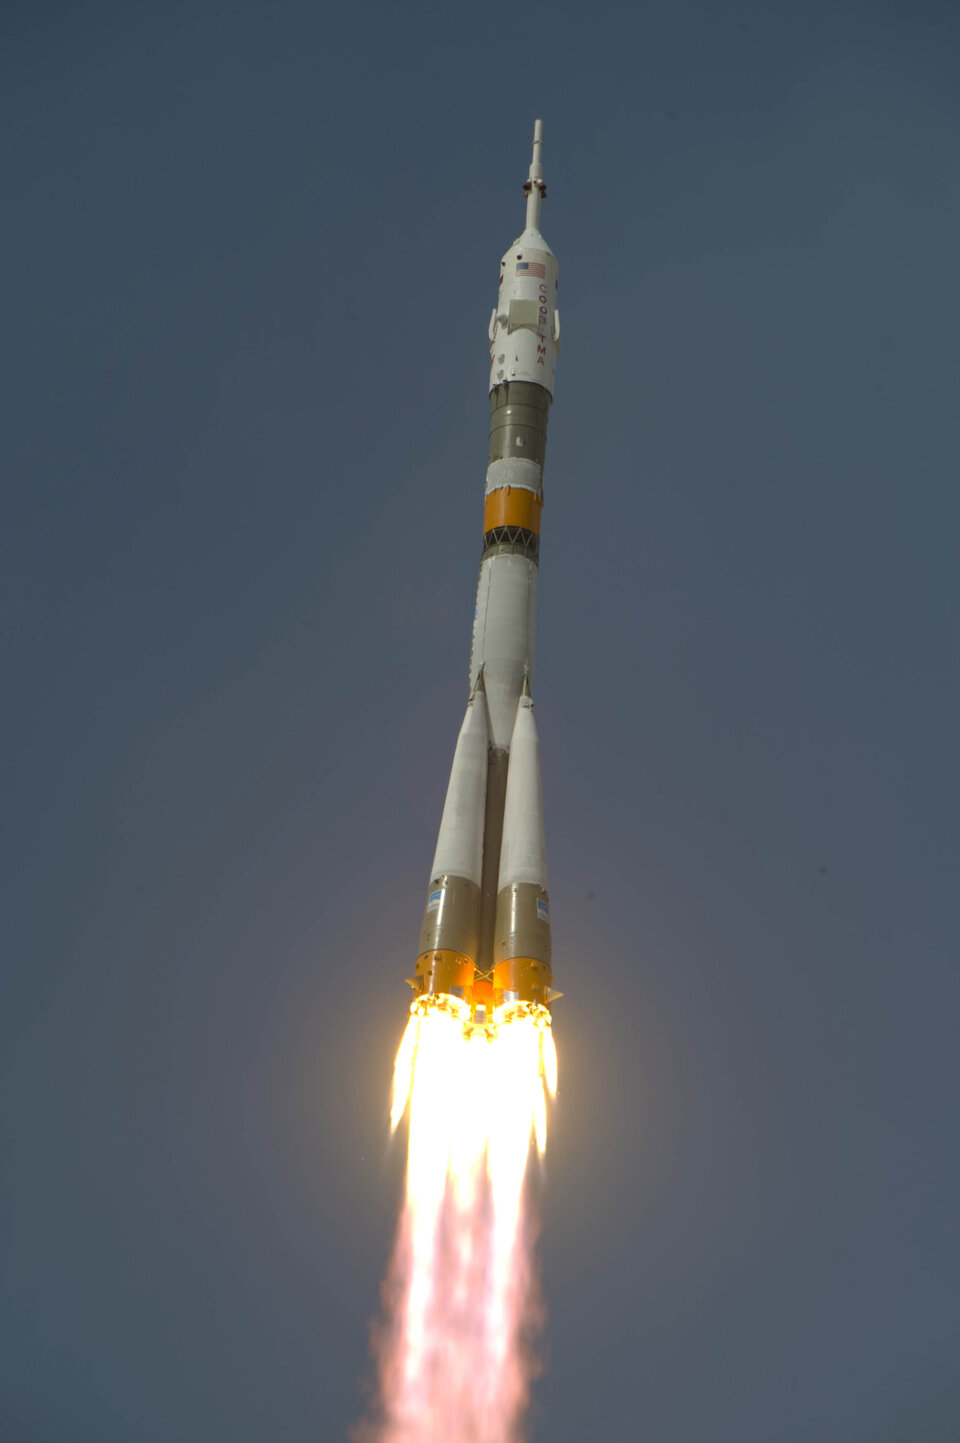 The Soyuz TMA-15 spacecraft was launched from Baikonur Cosmodrome on 27 May